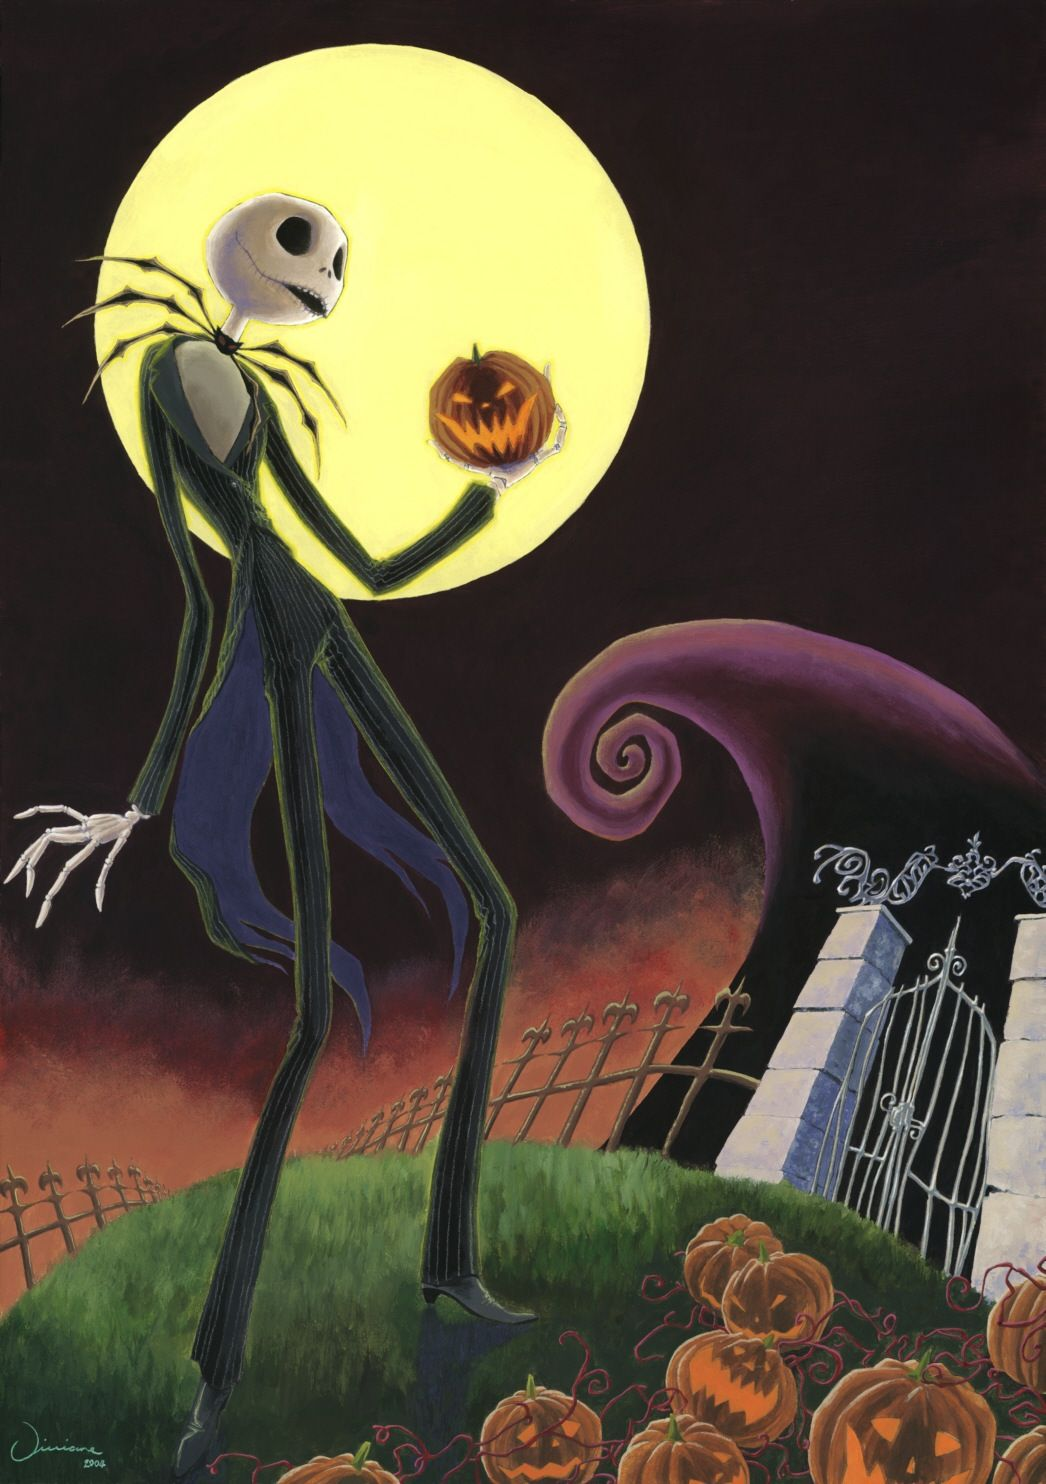 Download Wallpaper Halloween Nightmare Before Christmas - c03ea3121b5b66745c03e5b0a1b88c9b  Picture_561785.jpg